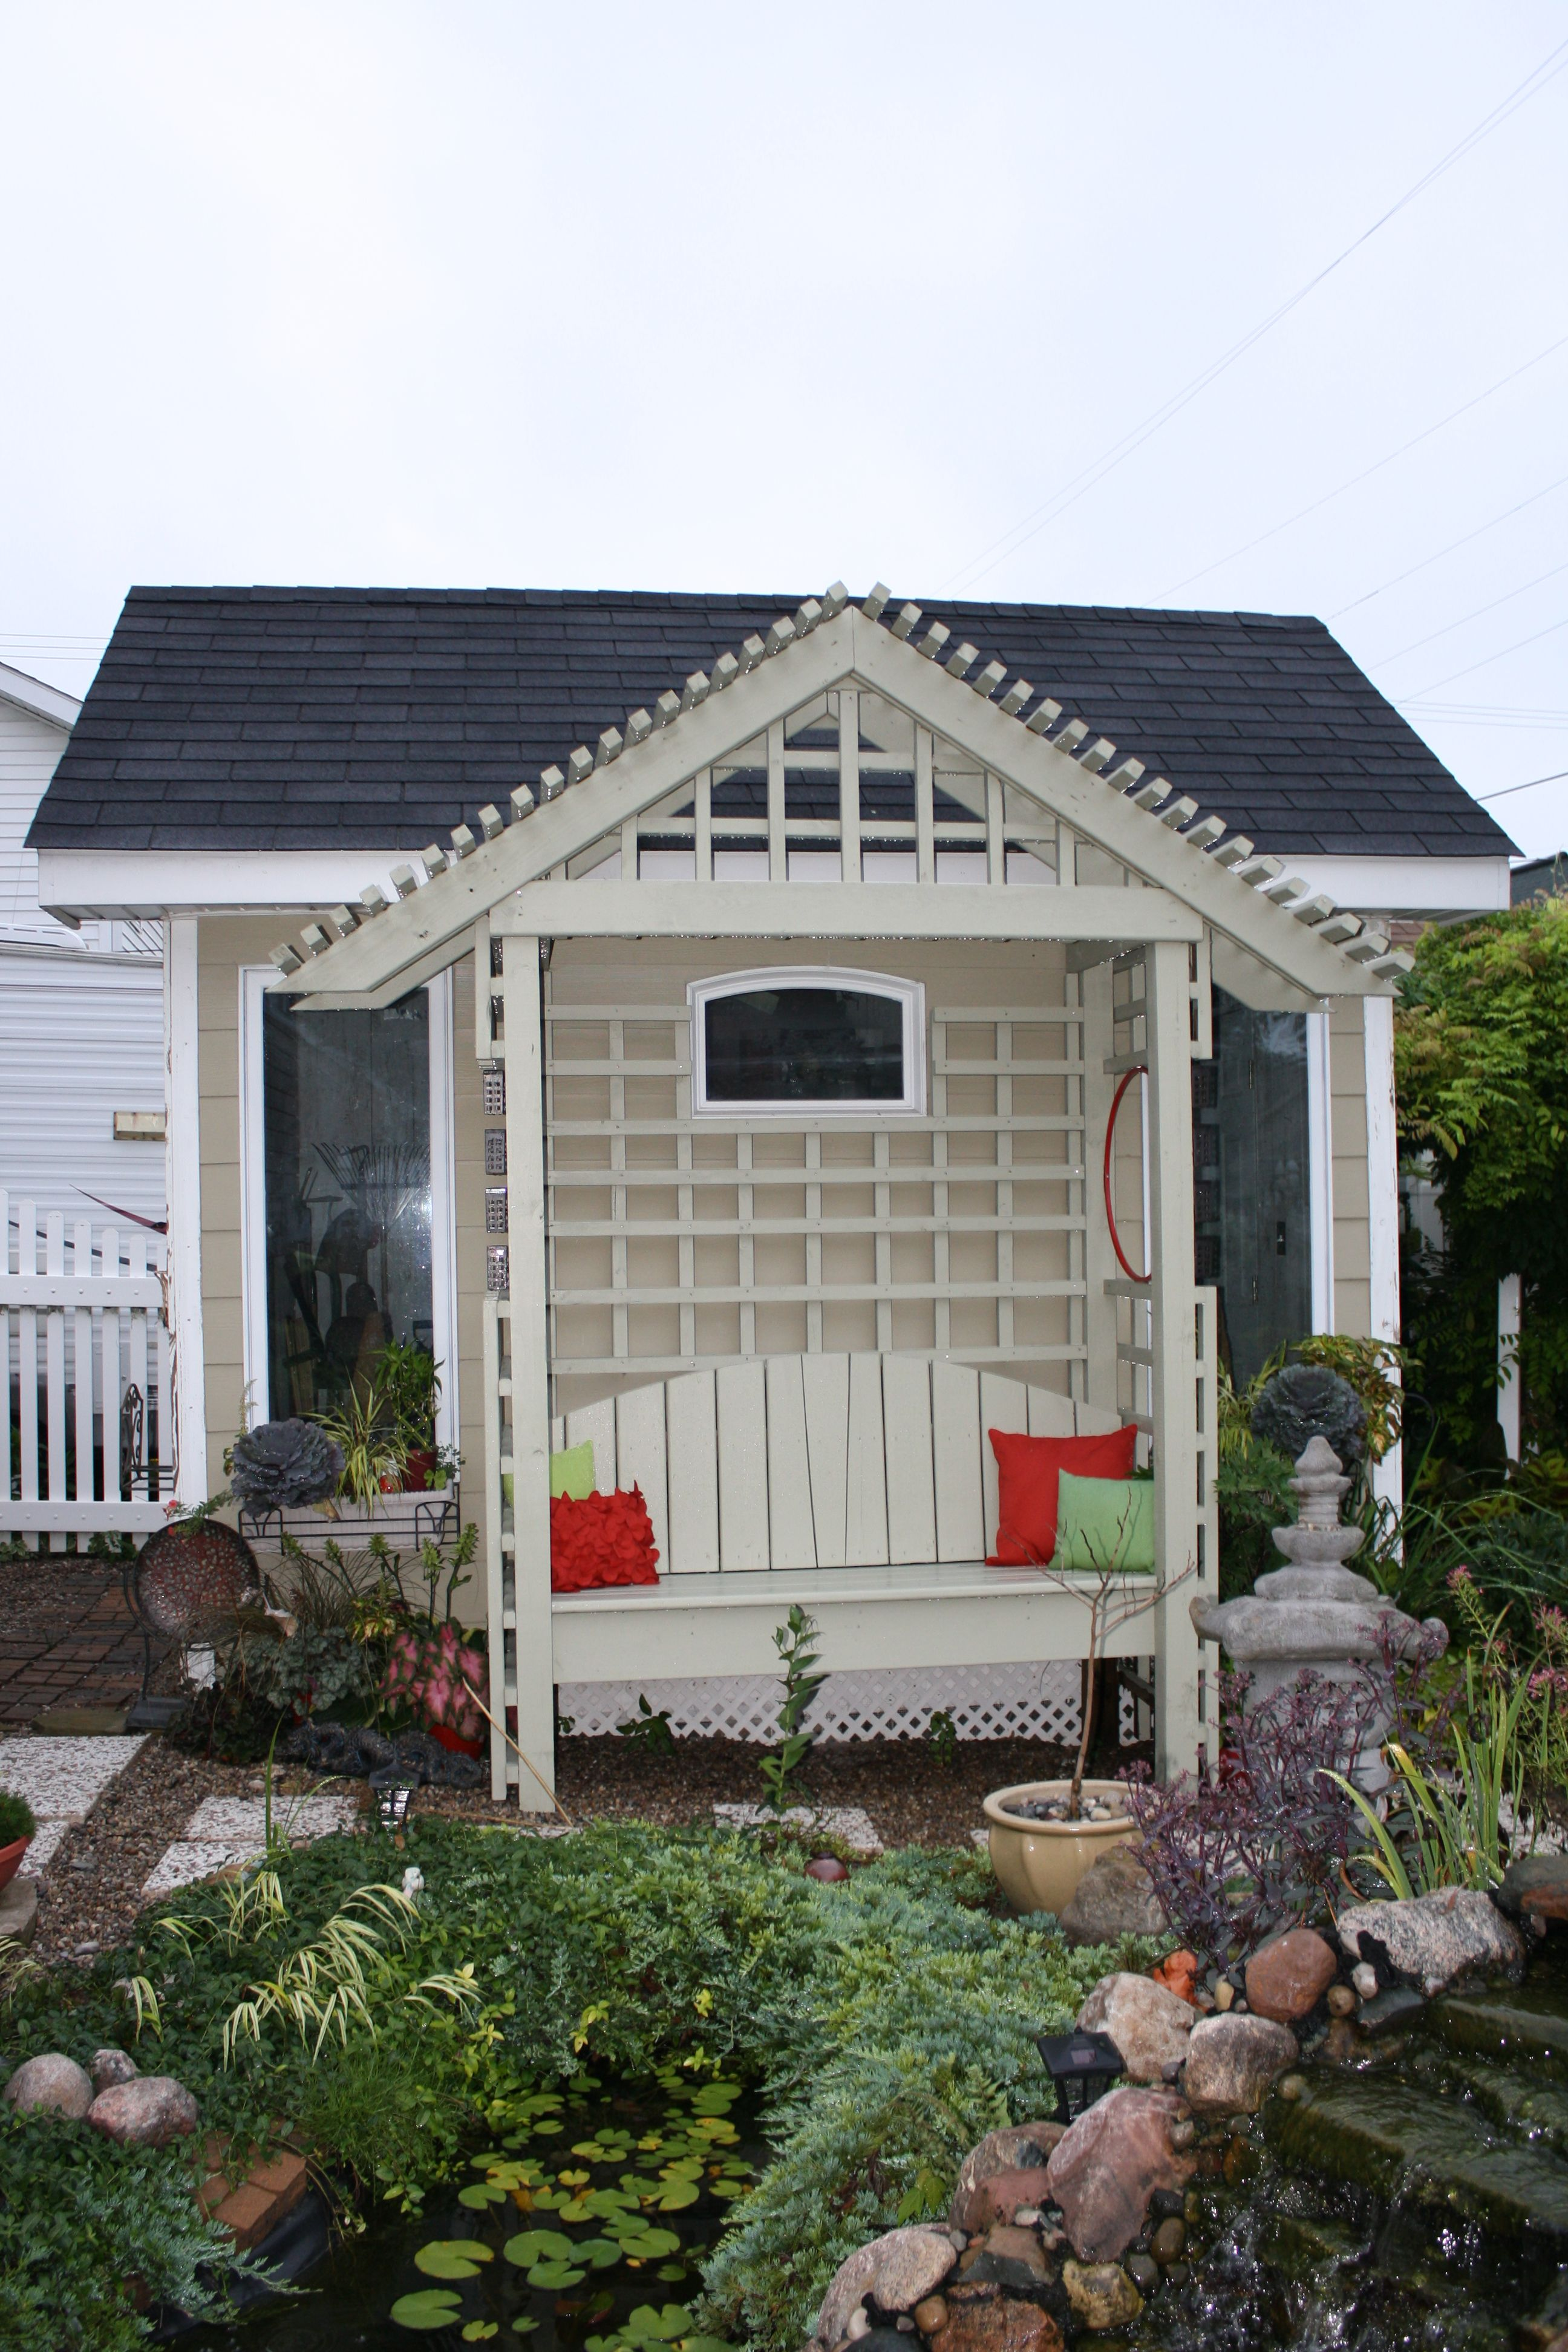 Adoreable Potting Shed... a Linda welch creation